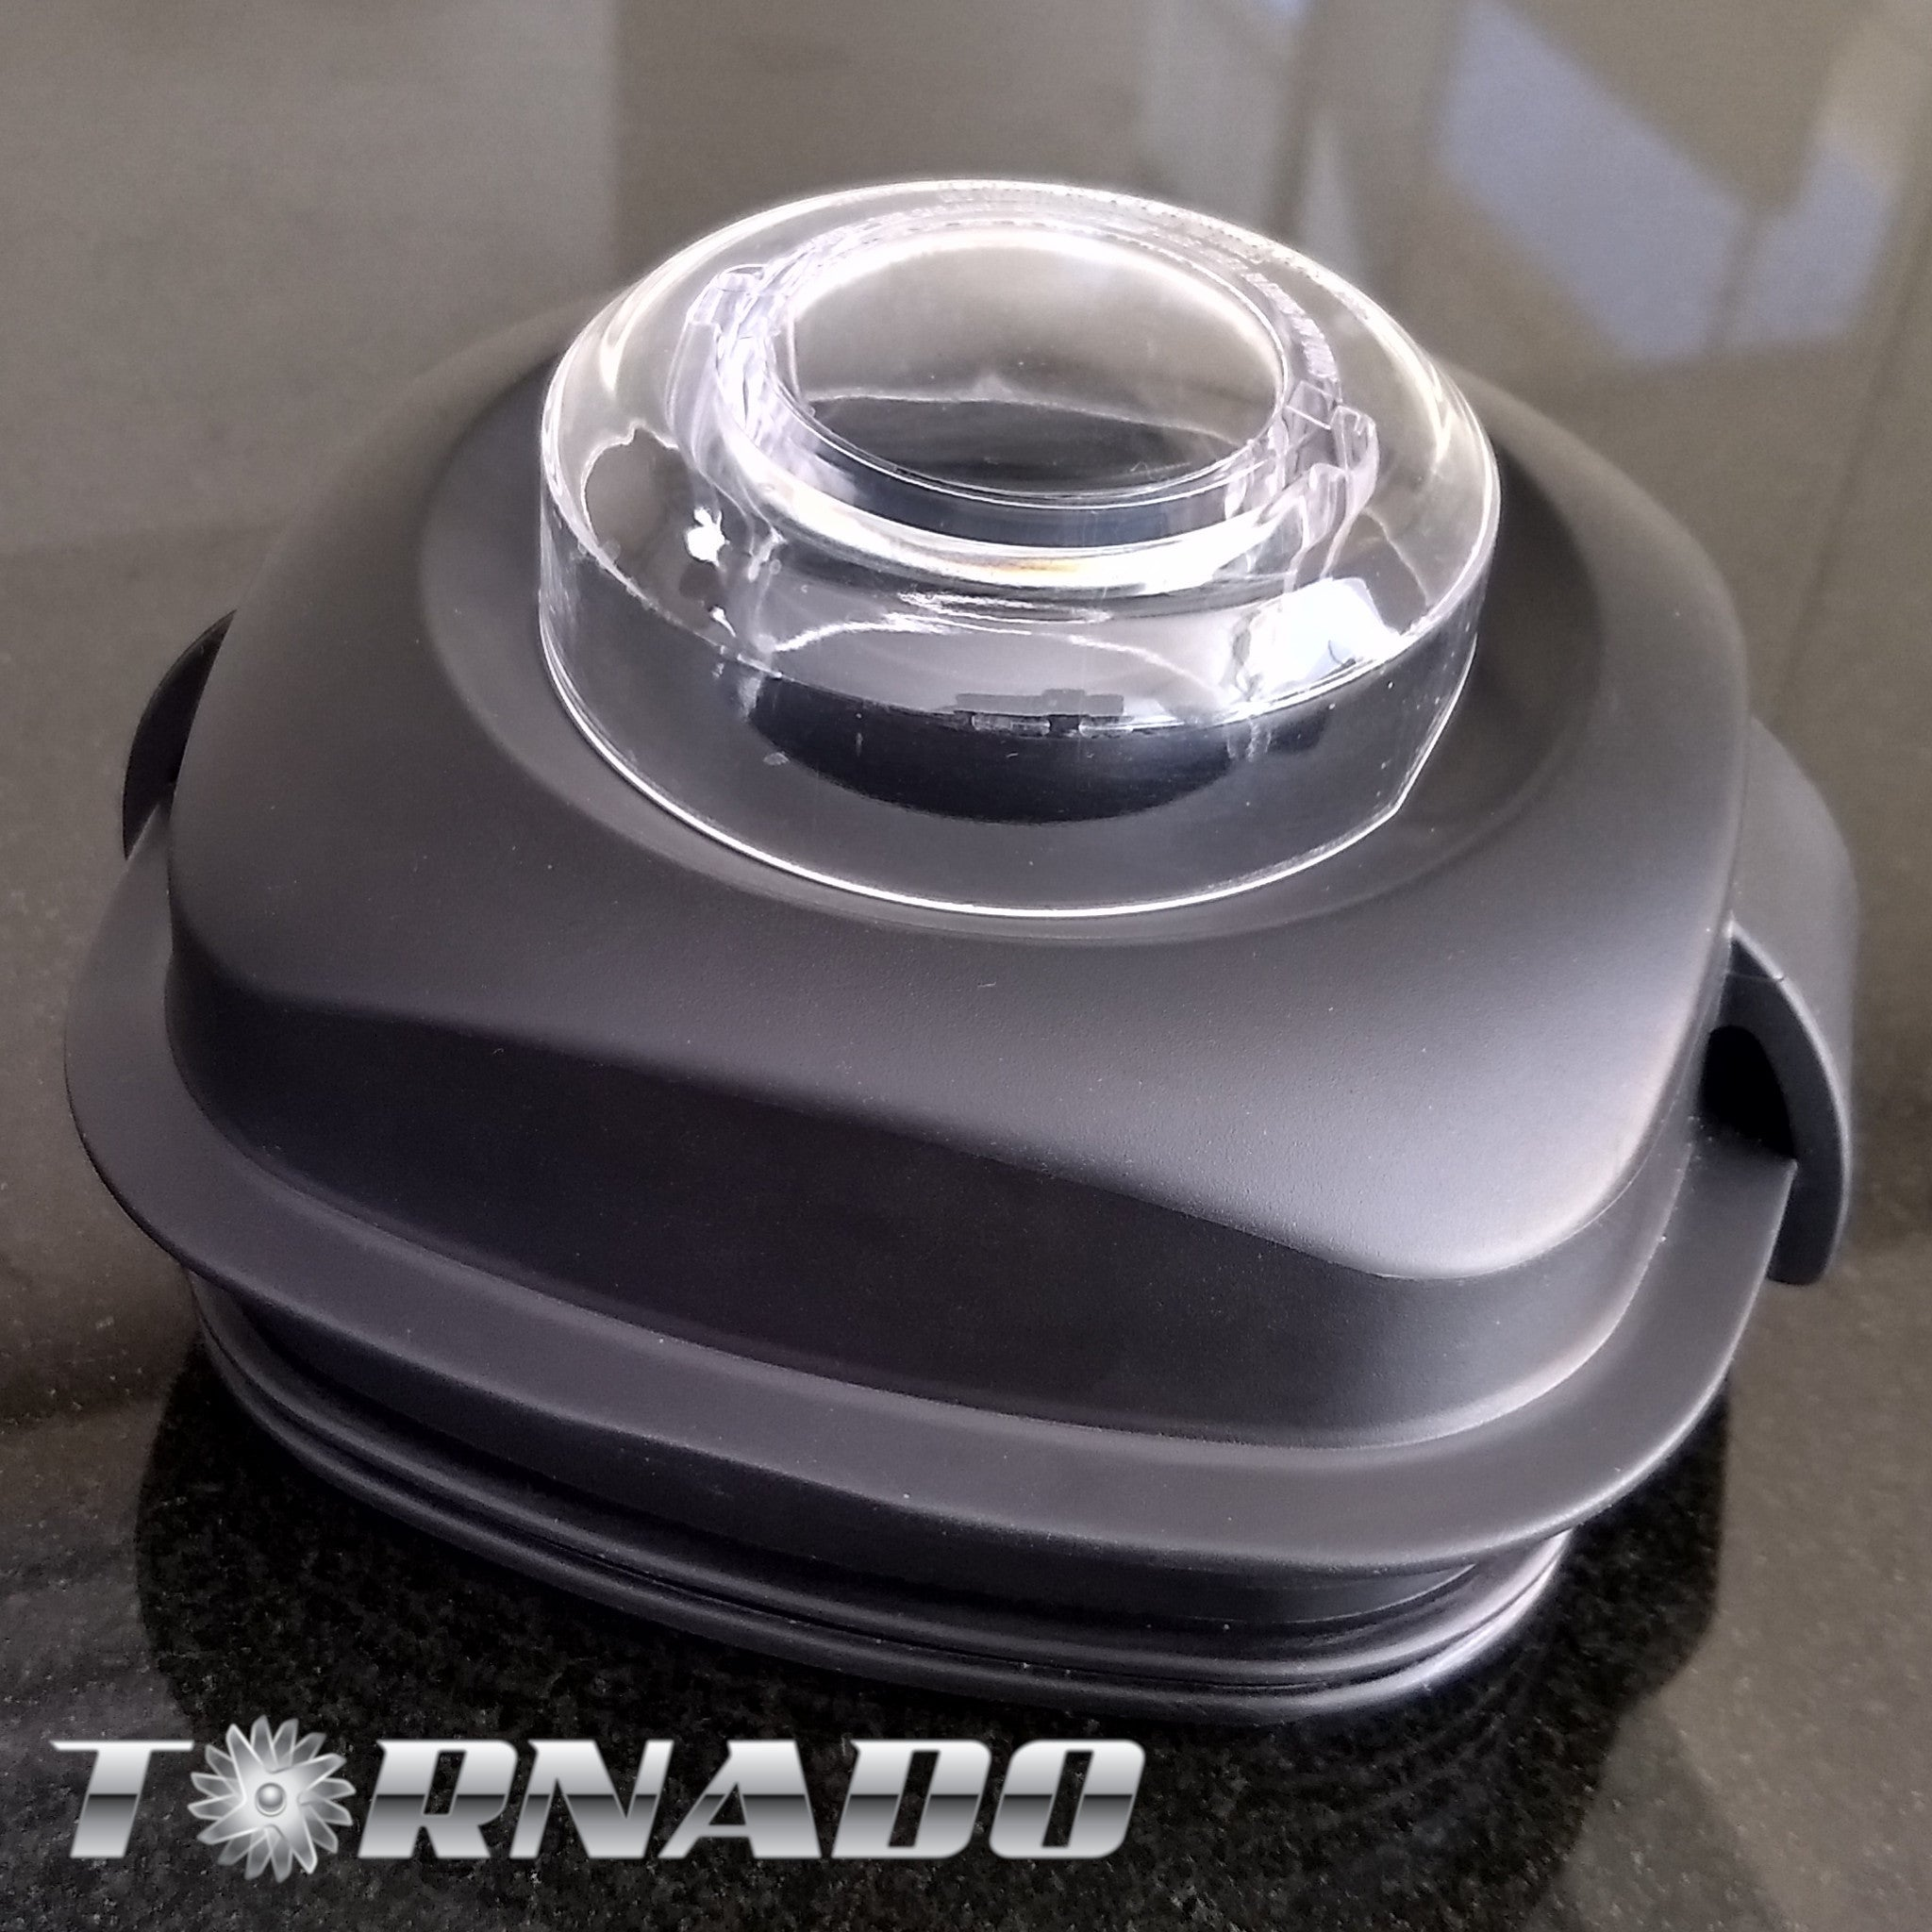 TORNADO Blender Container - complete with Lid and Blade Assembly - TornadoBlender.com / DirectStoreUSA.com